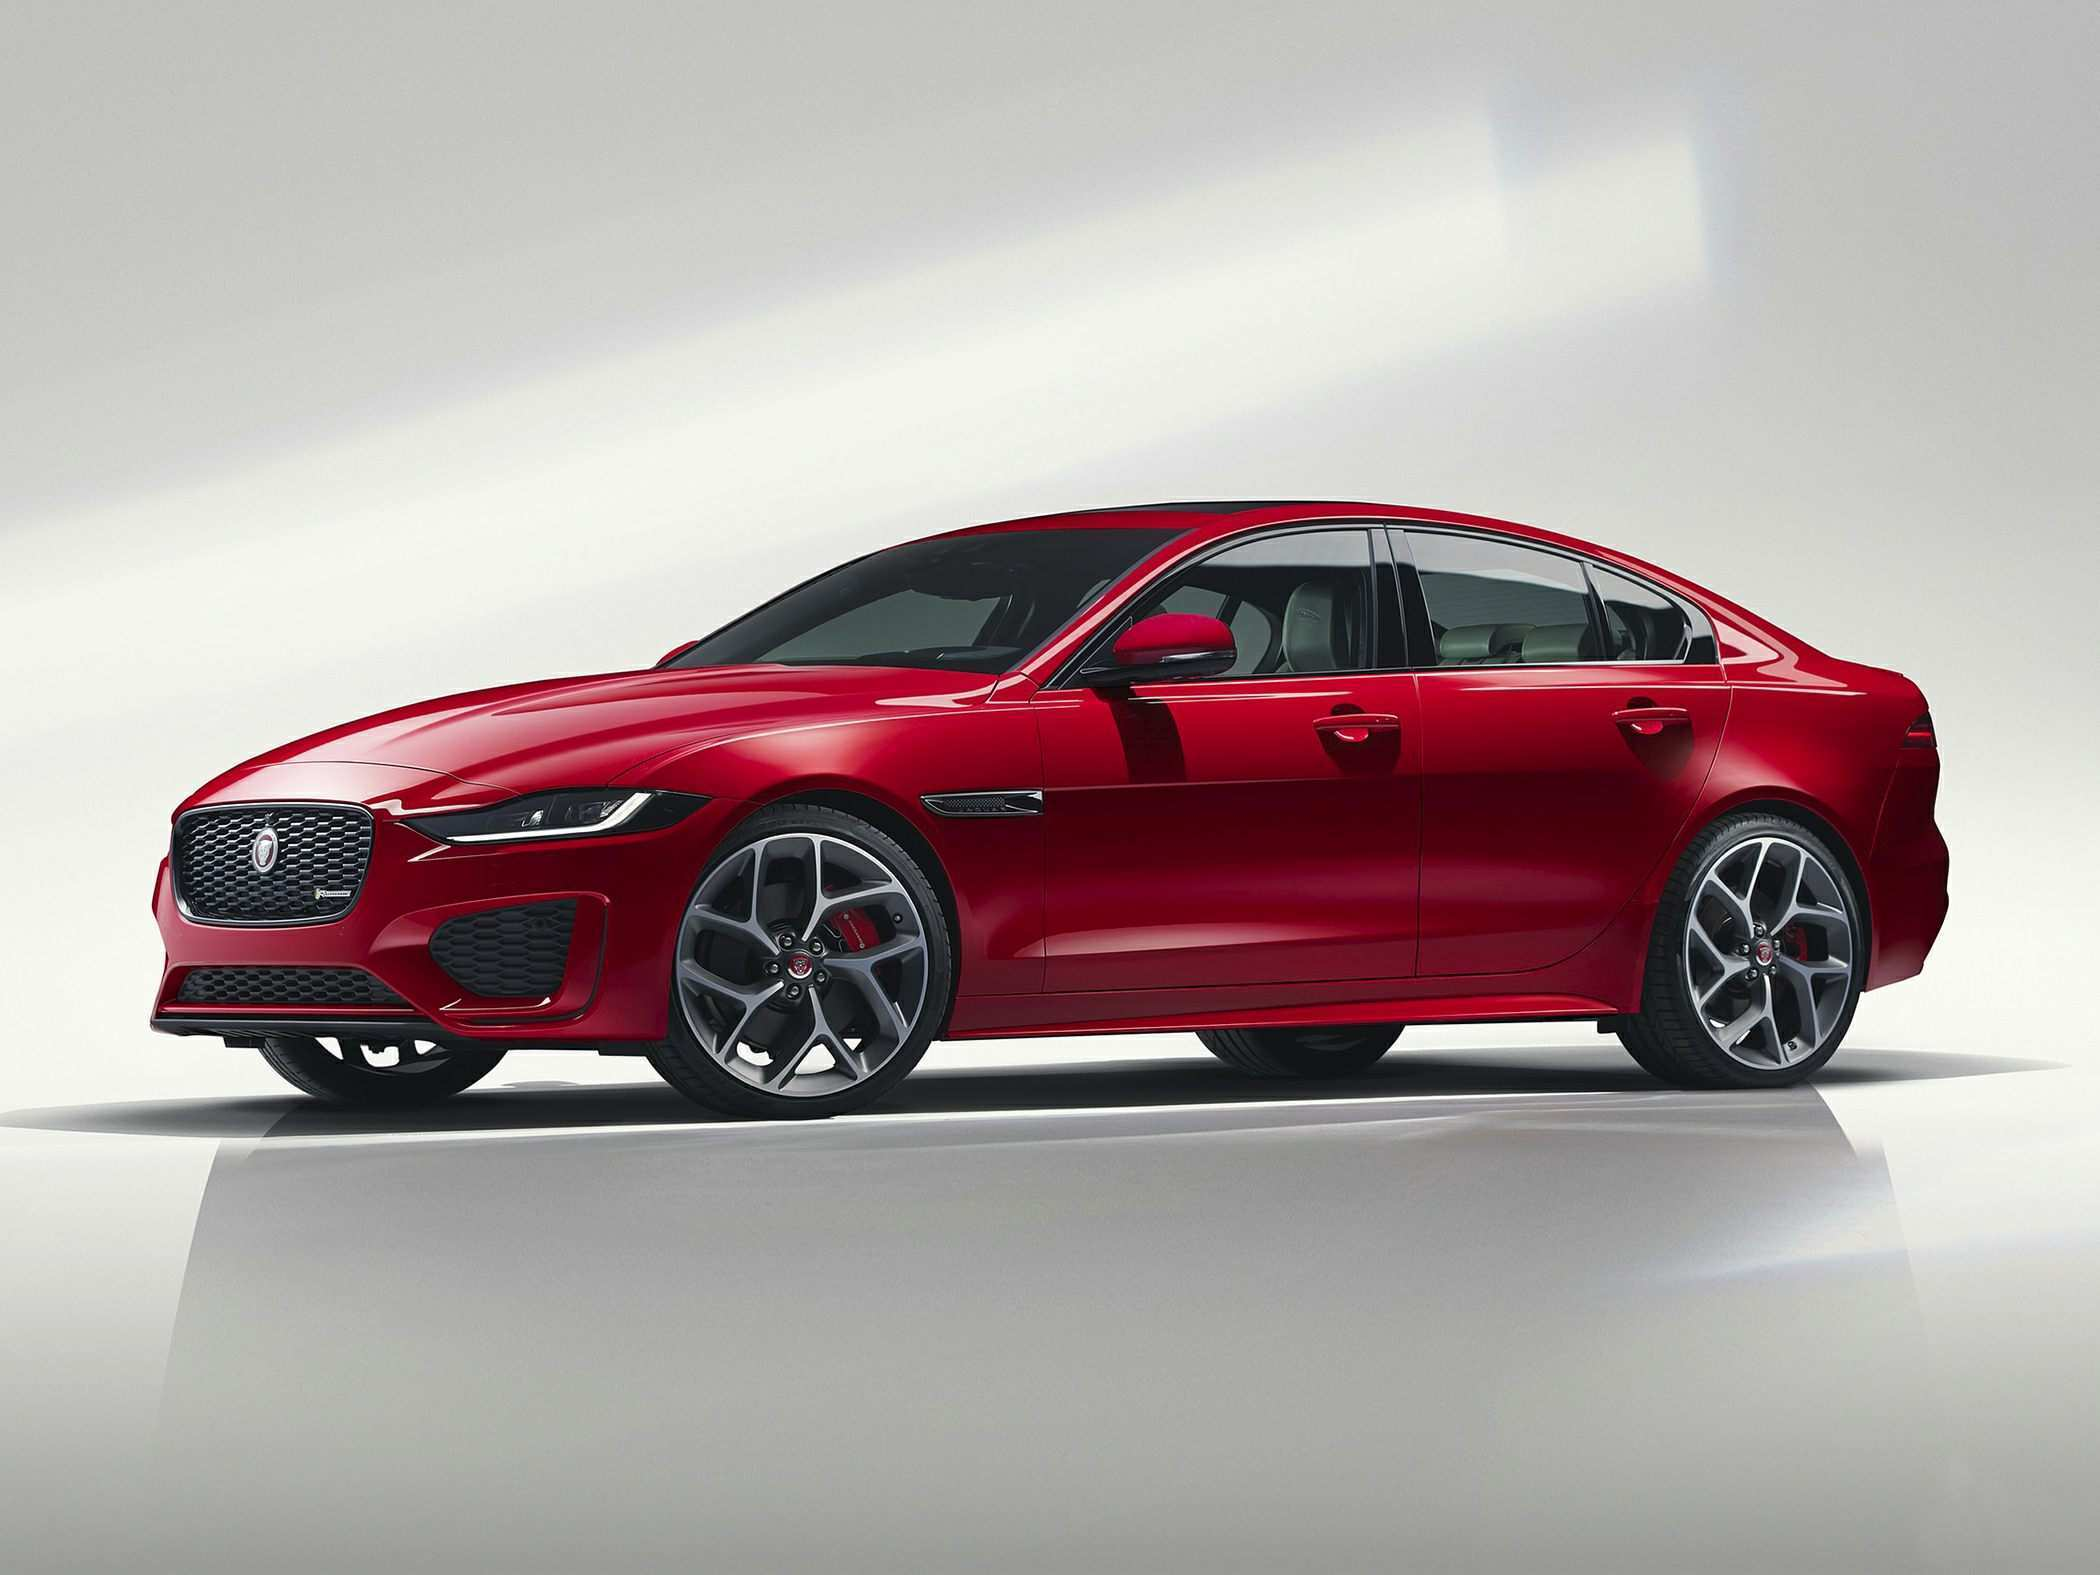 47 The Best 2020 All Jaguar Xe Sedan Release Date